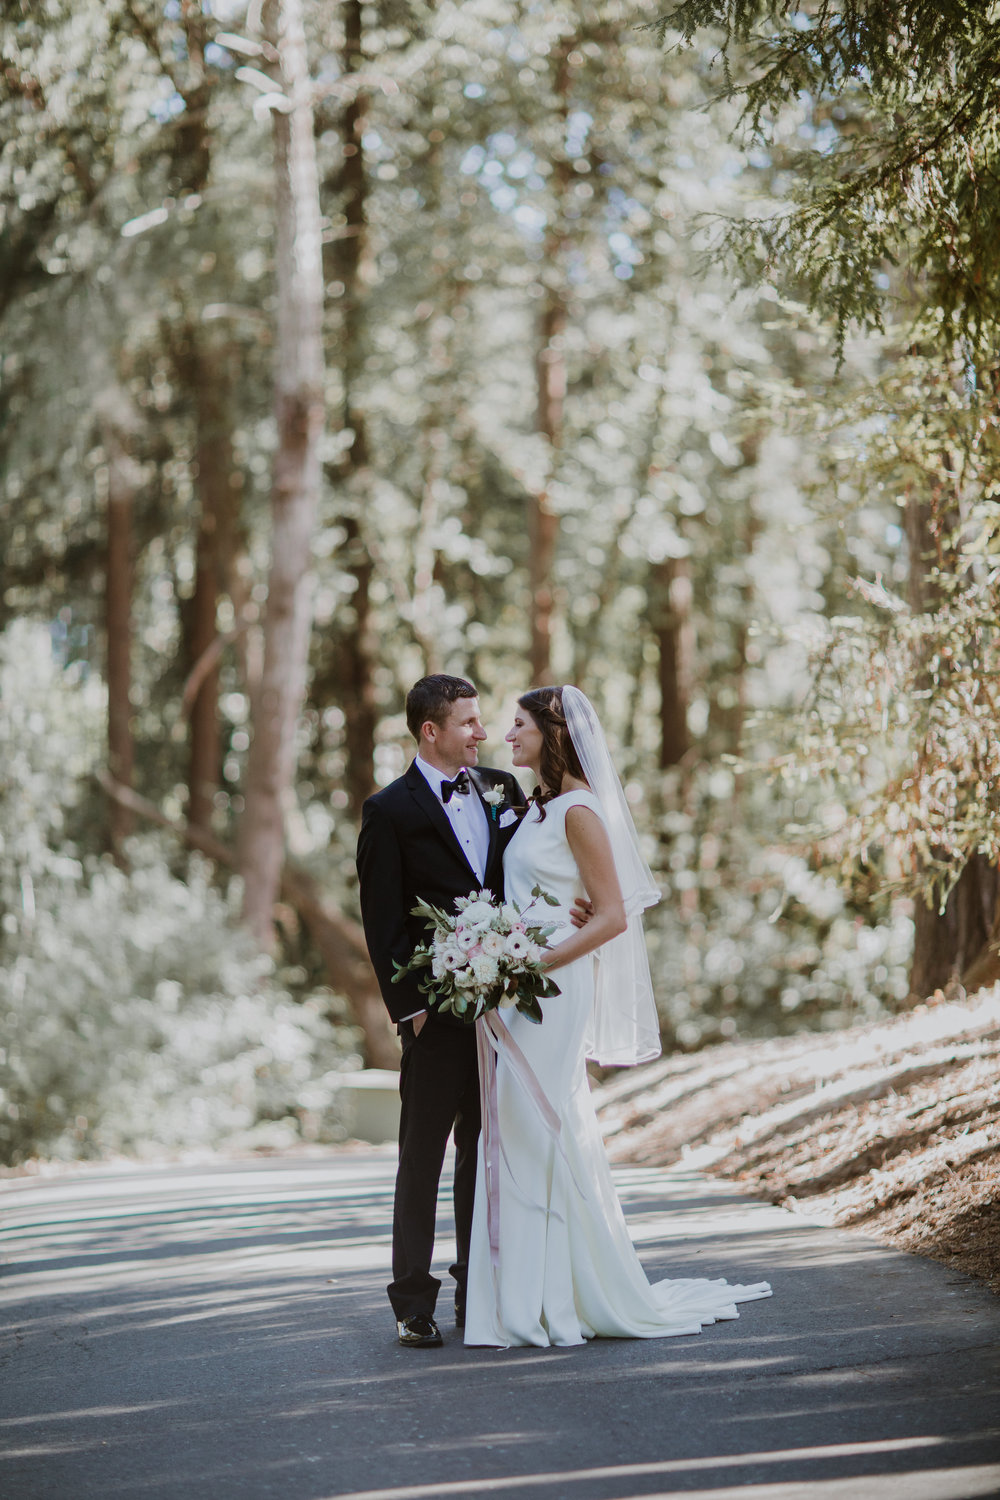 Romantic and natural wedding flowers by Venn Floral, photographed by Gretchen Gause in Healdsburg, California.